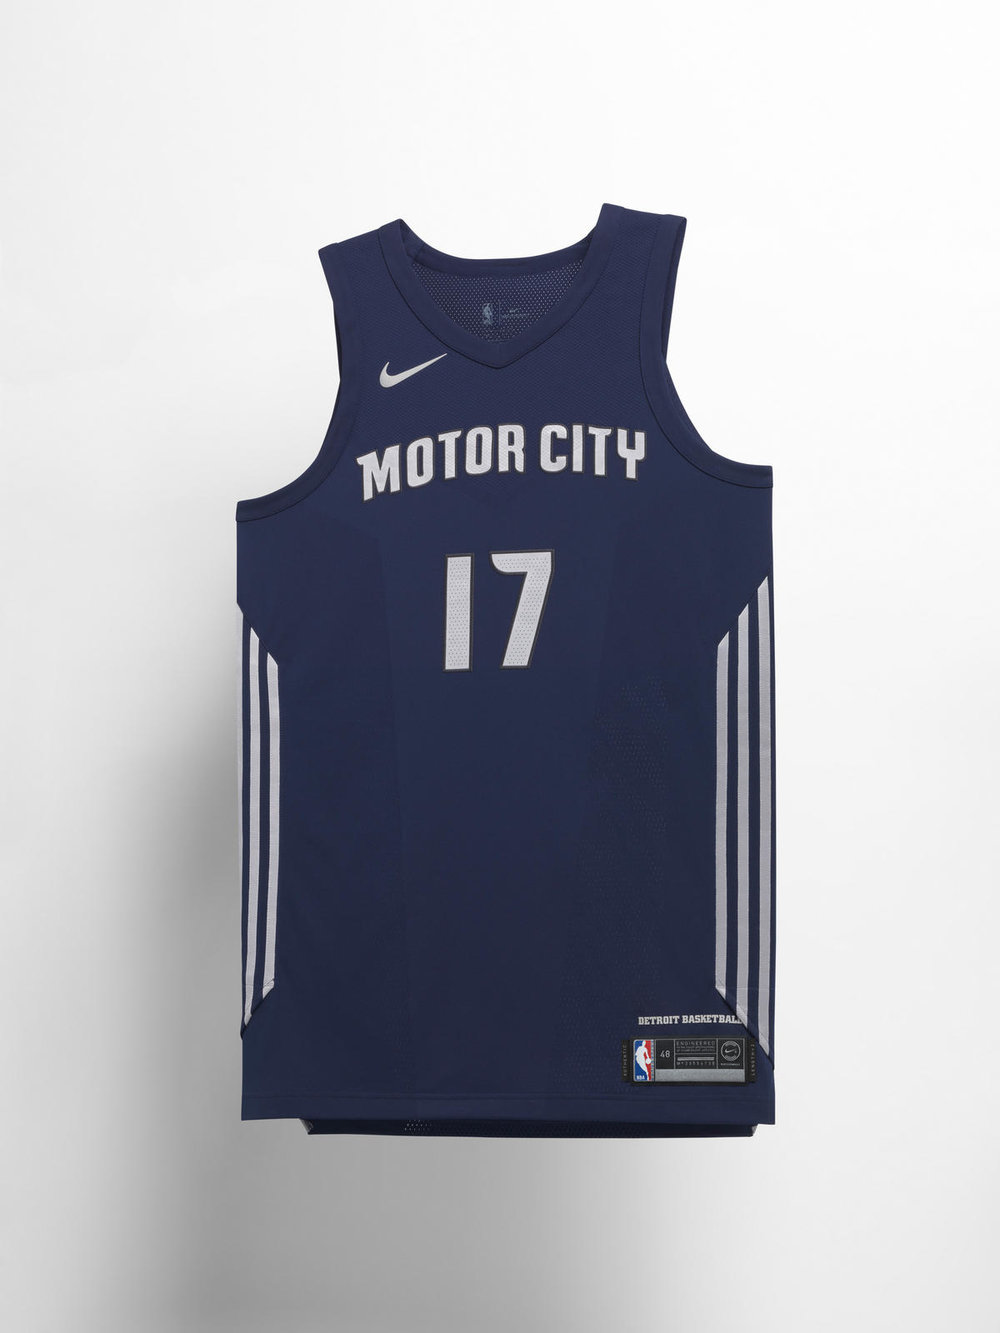 Nike_NBA_City_Edition_Uniform_Detroit_Pistons_0119_native_1600.jpeg